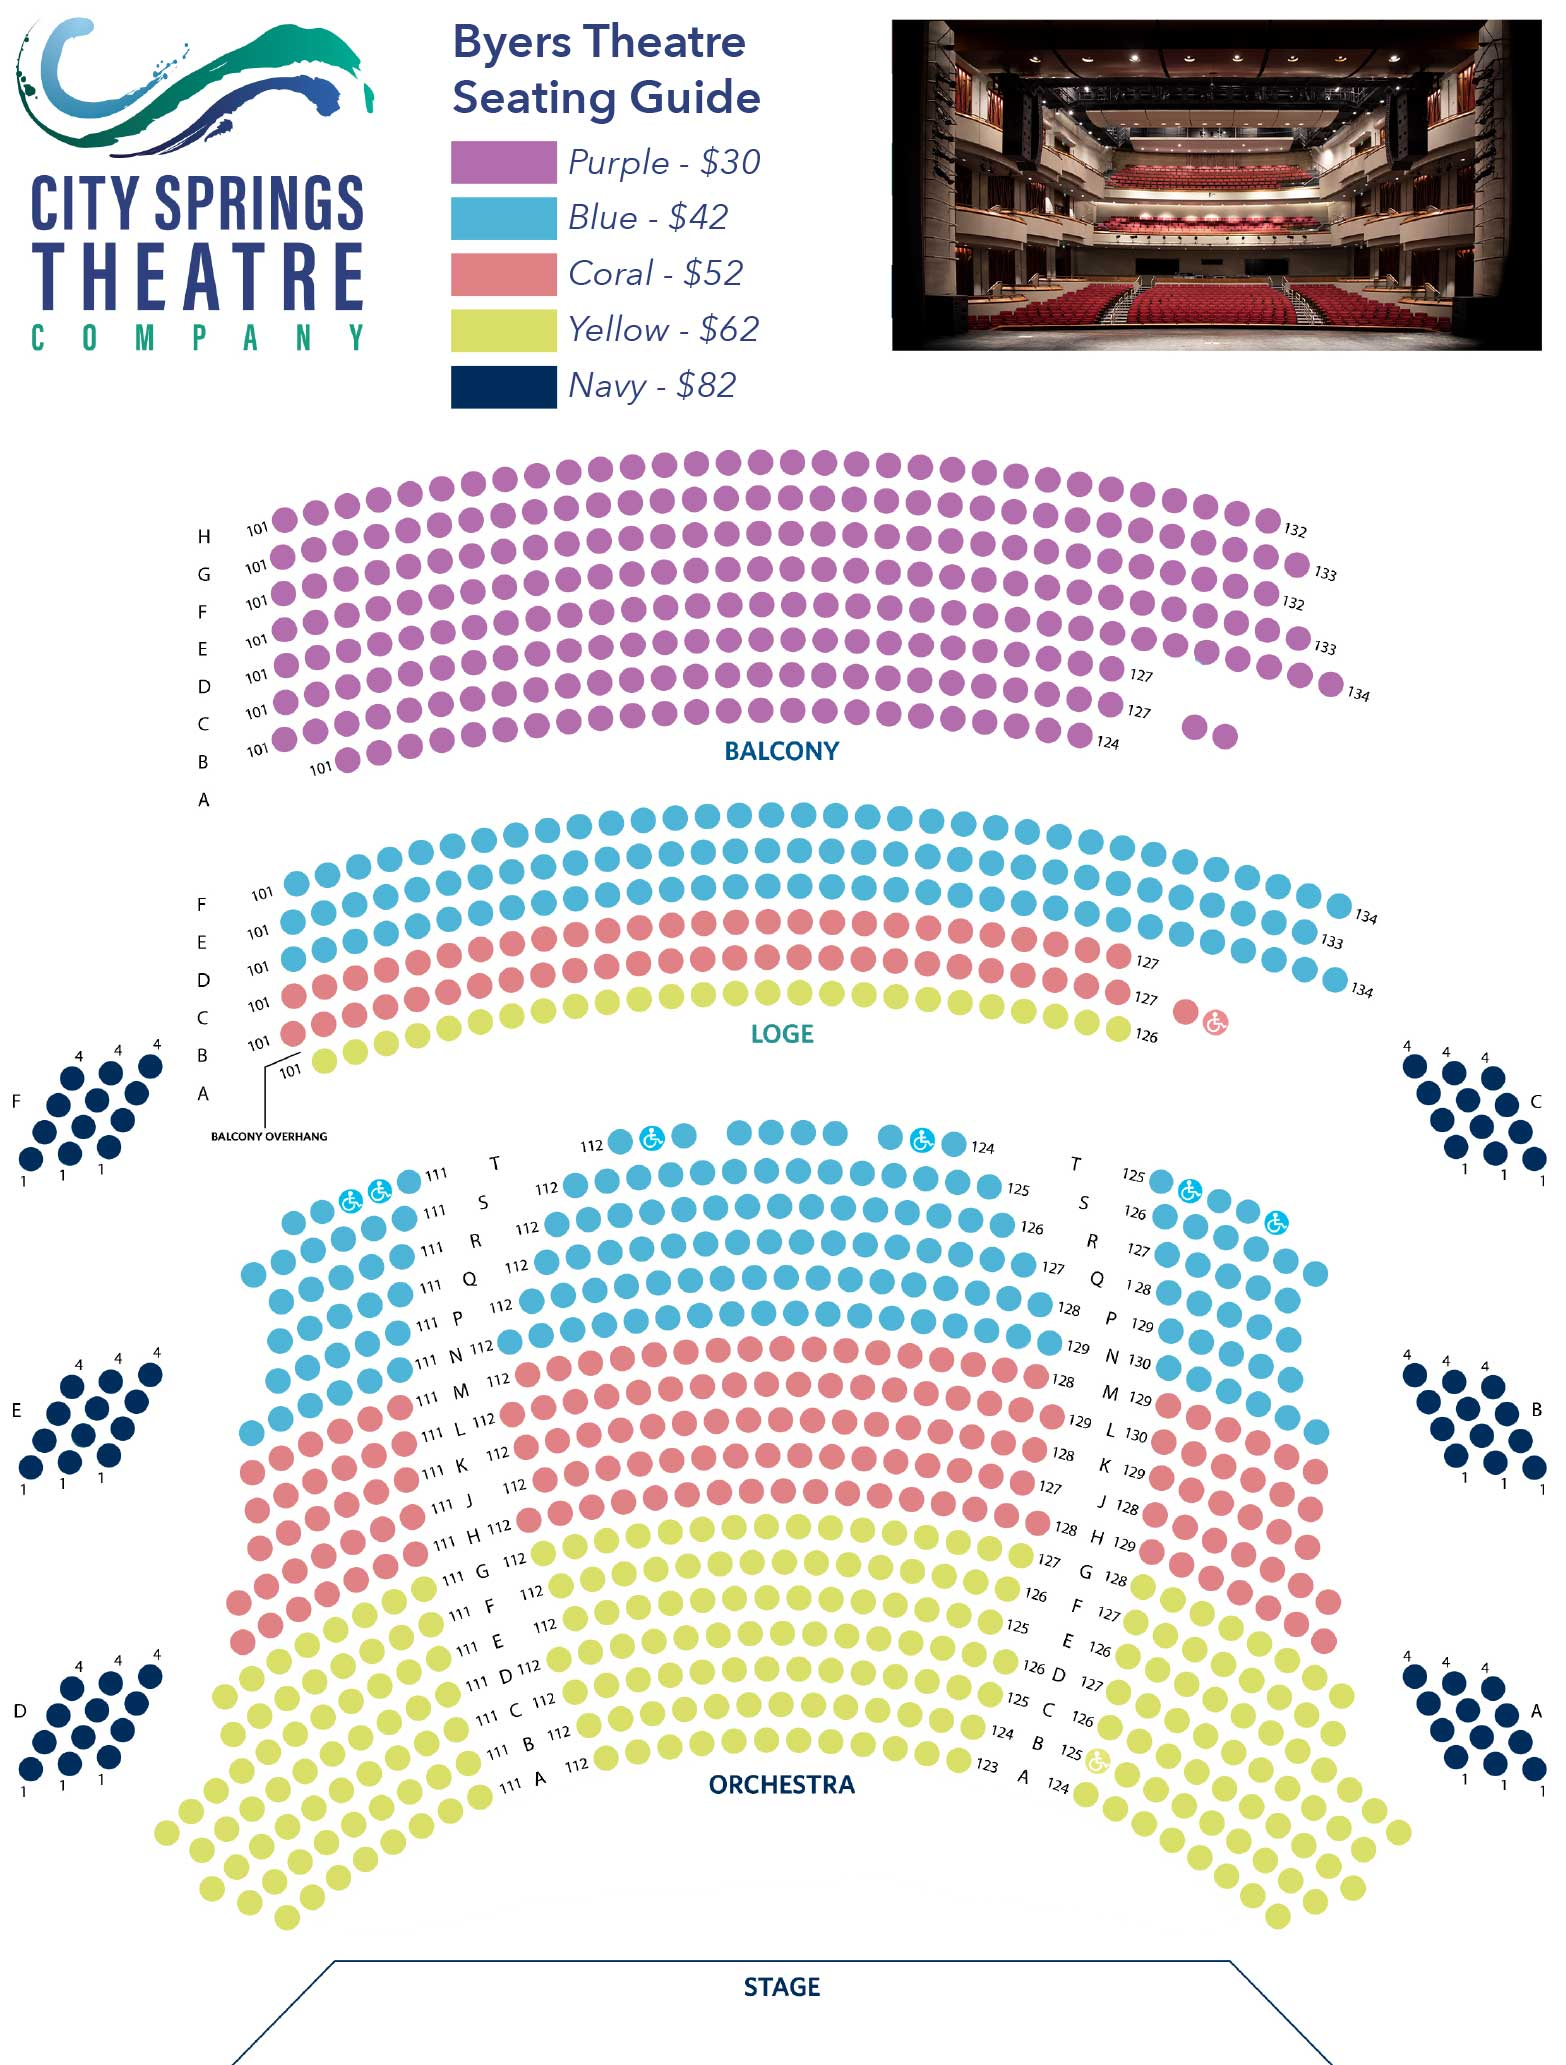 Click The Seating Chart For Larger View Pricing Excludes Ticketing Fees